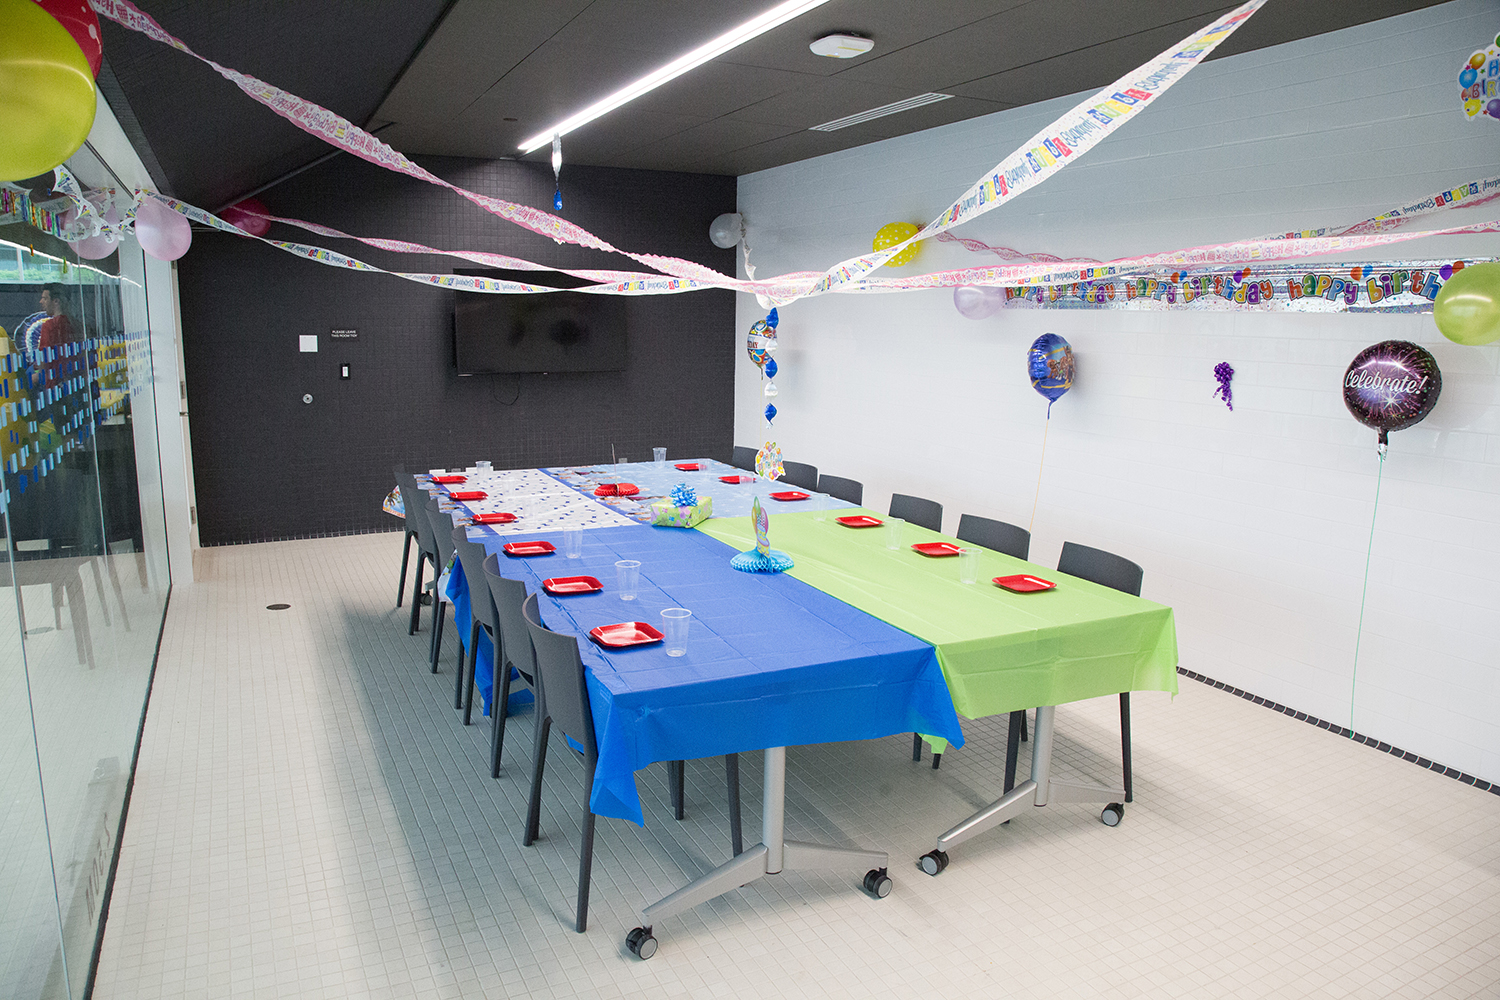 Birthday Party Room at the UBC Aquatic Centre